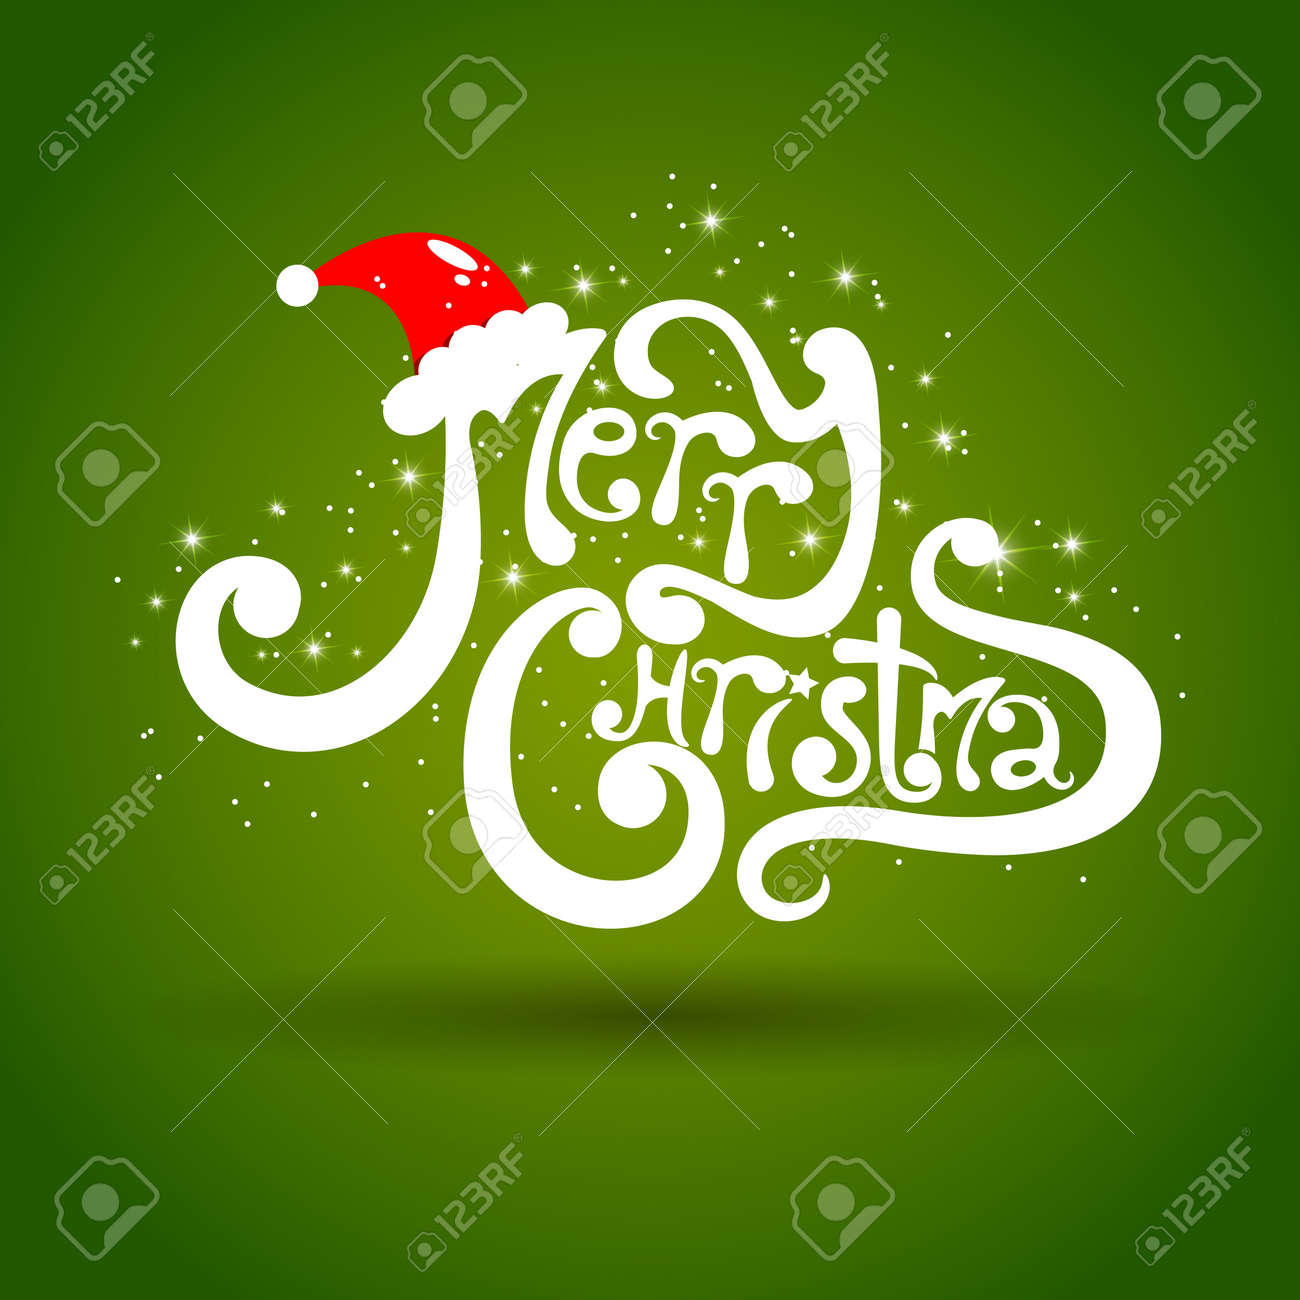 Merry christmas greeting card stock photo picture and royalty free merry christmas greeting card stock photo 16755866 m4hsunfo